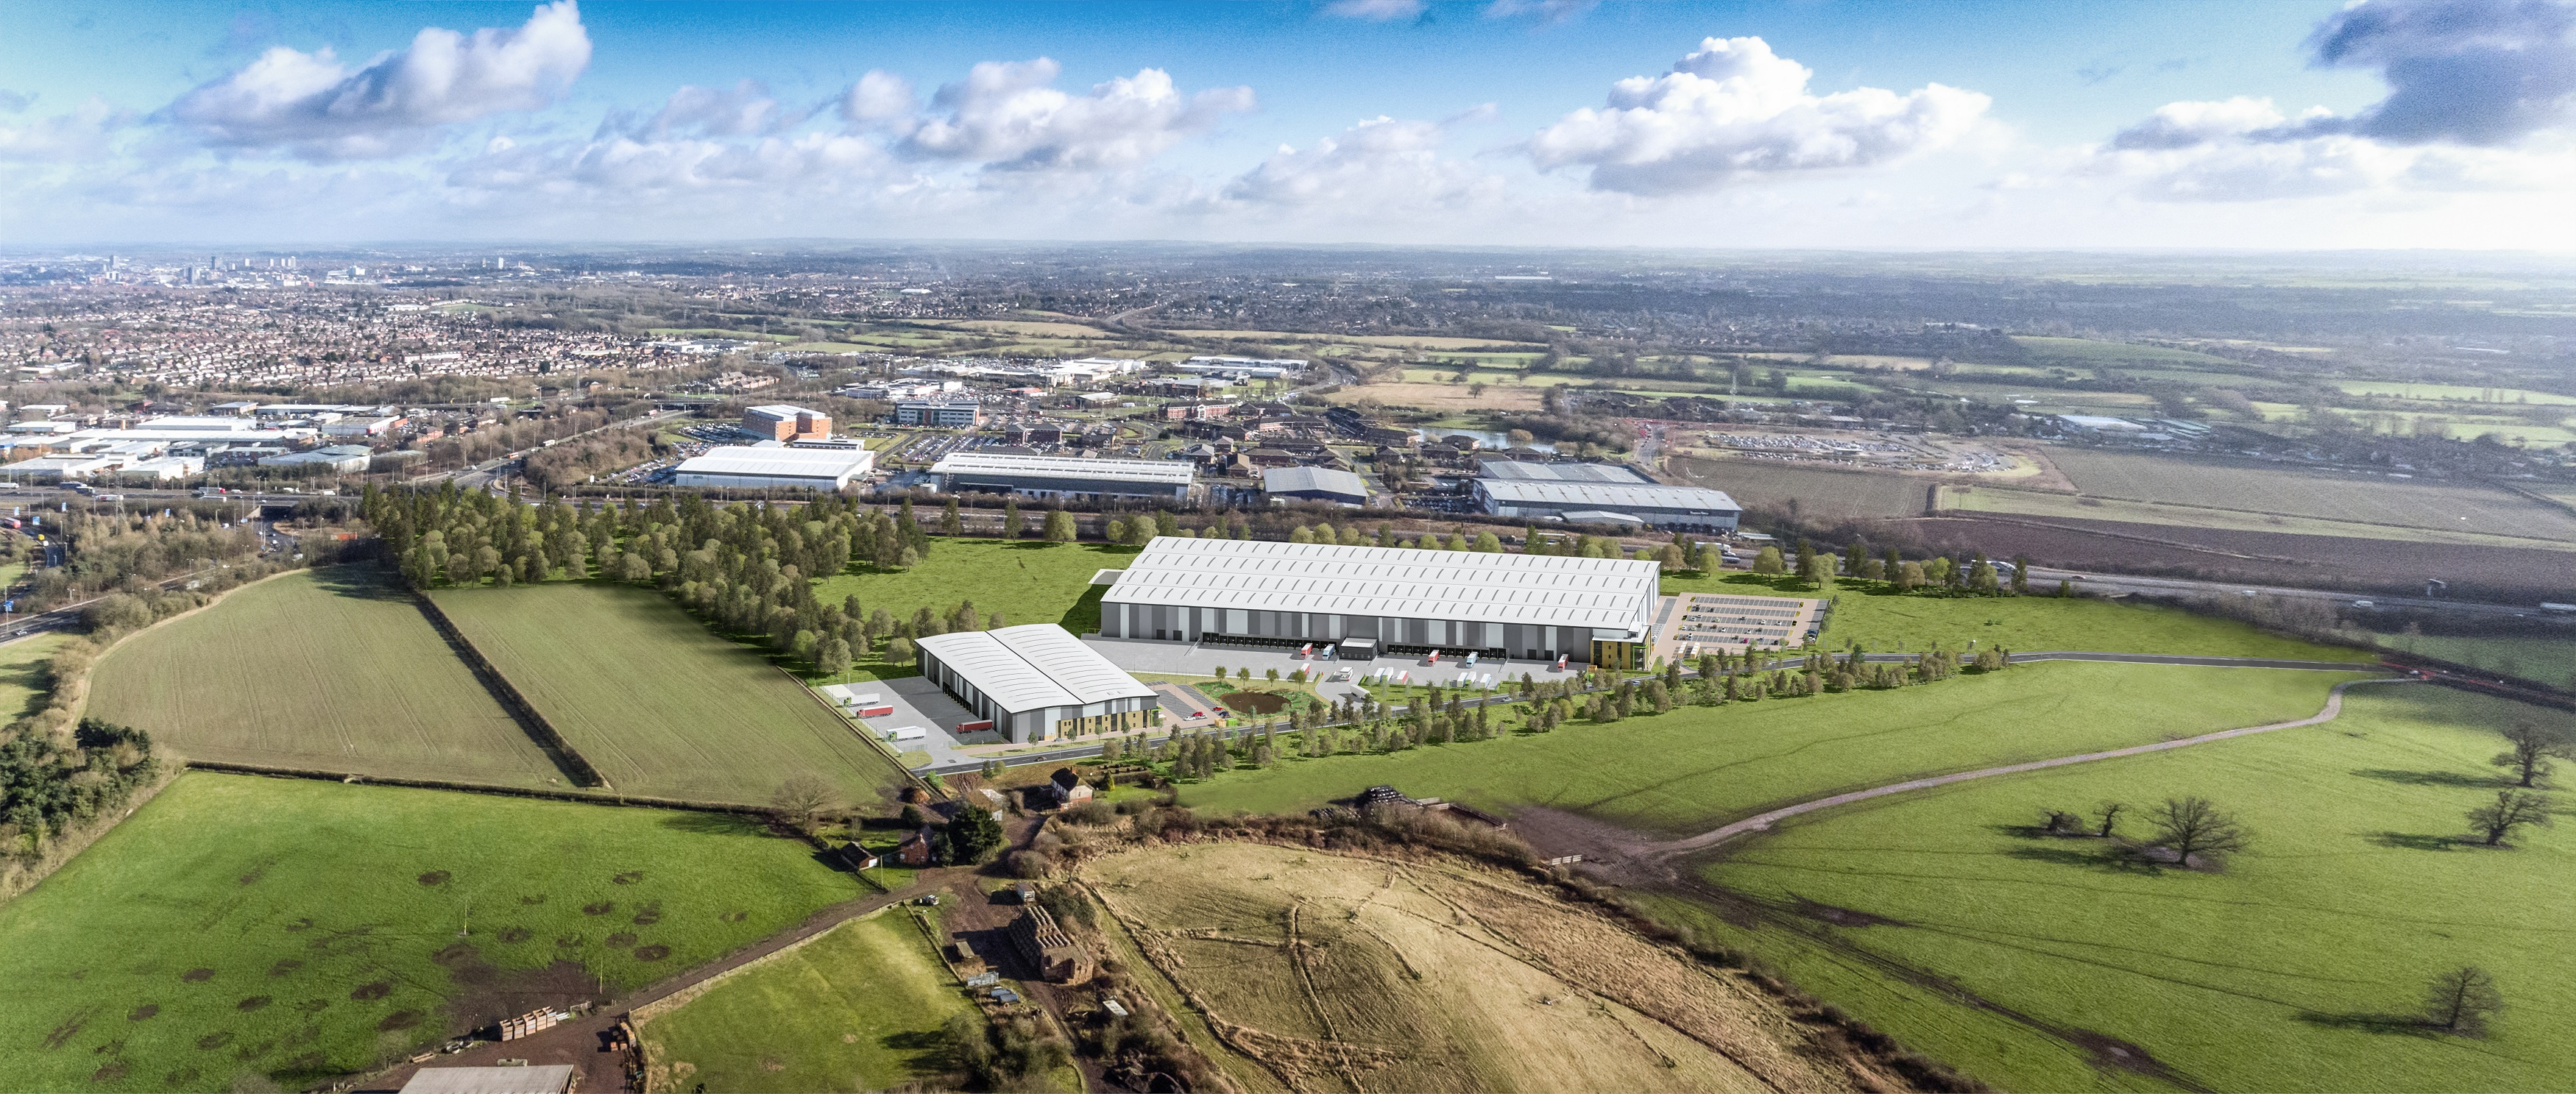 Leicester commercial park aerial